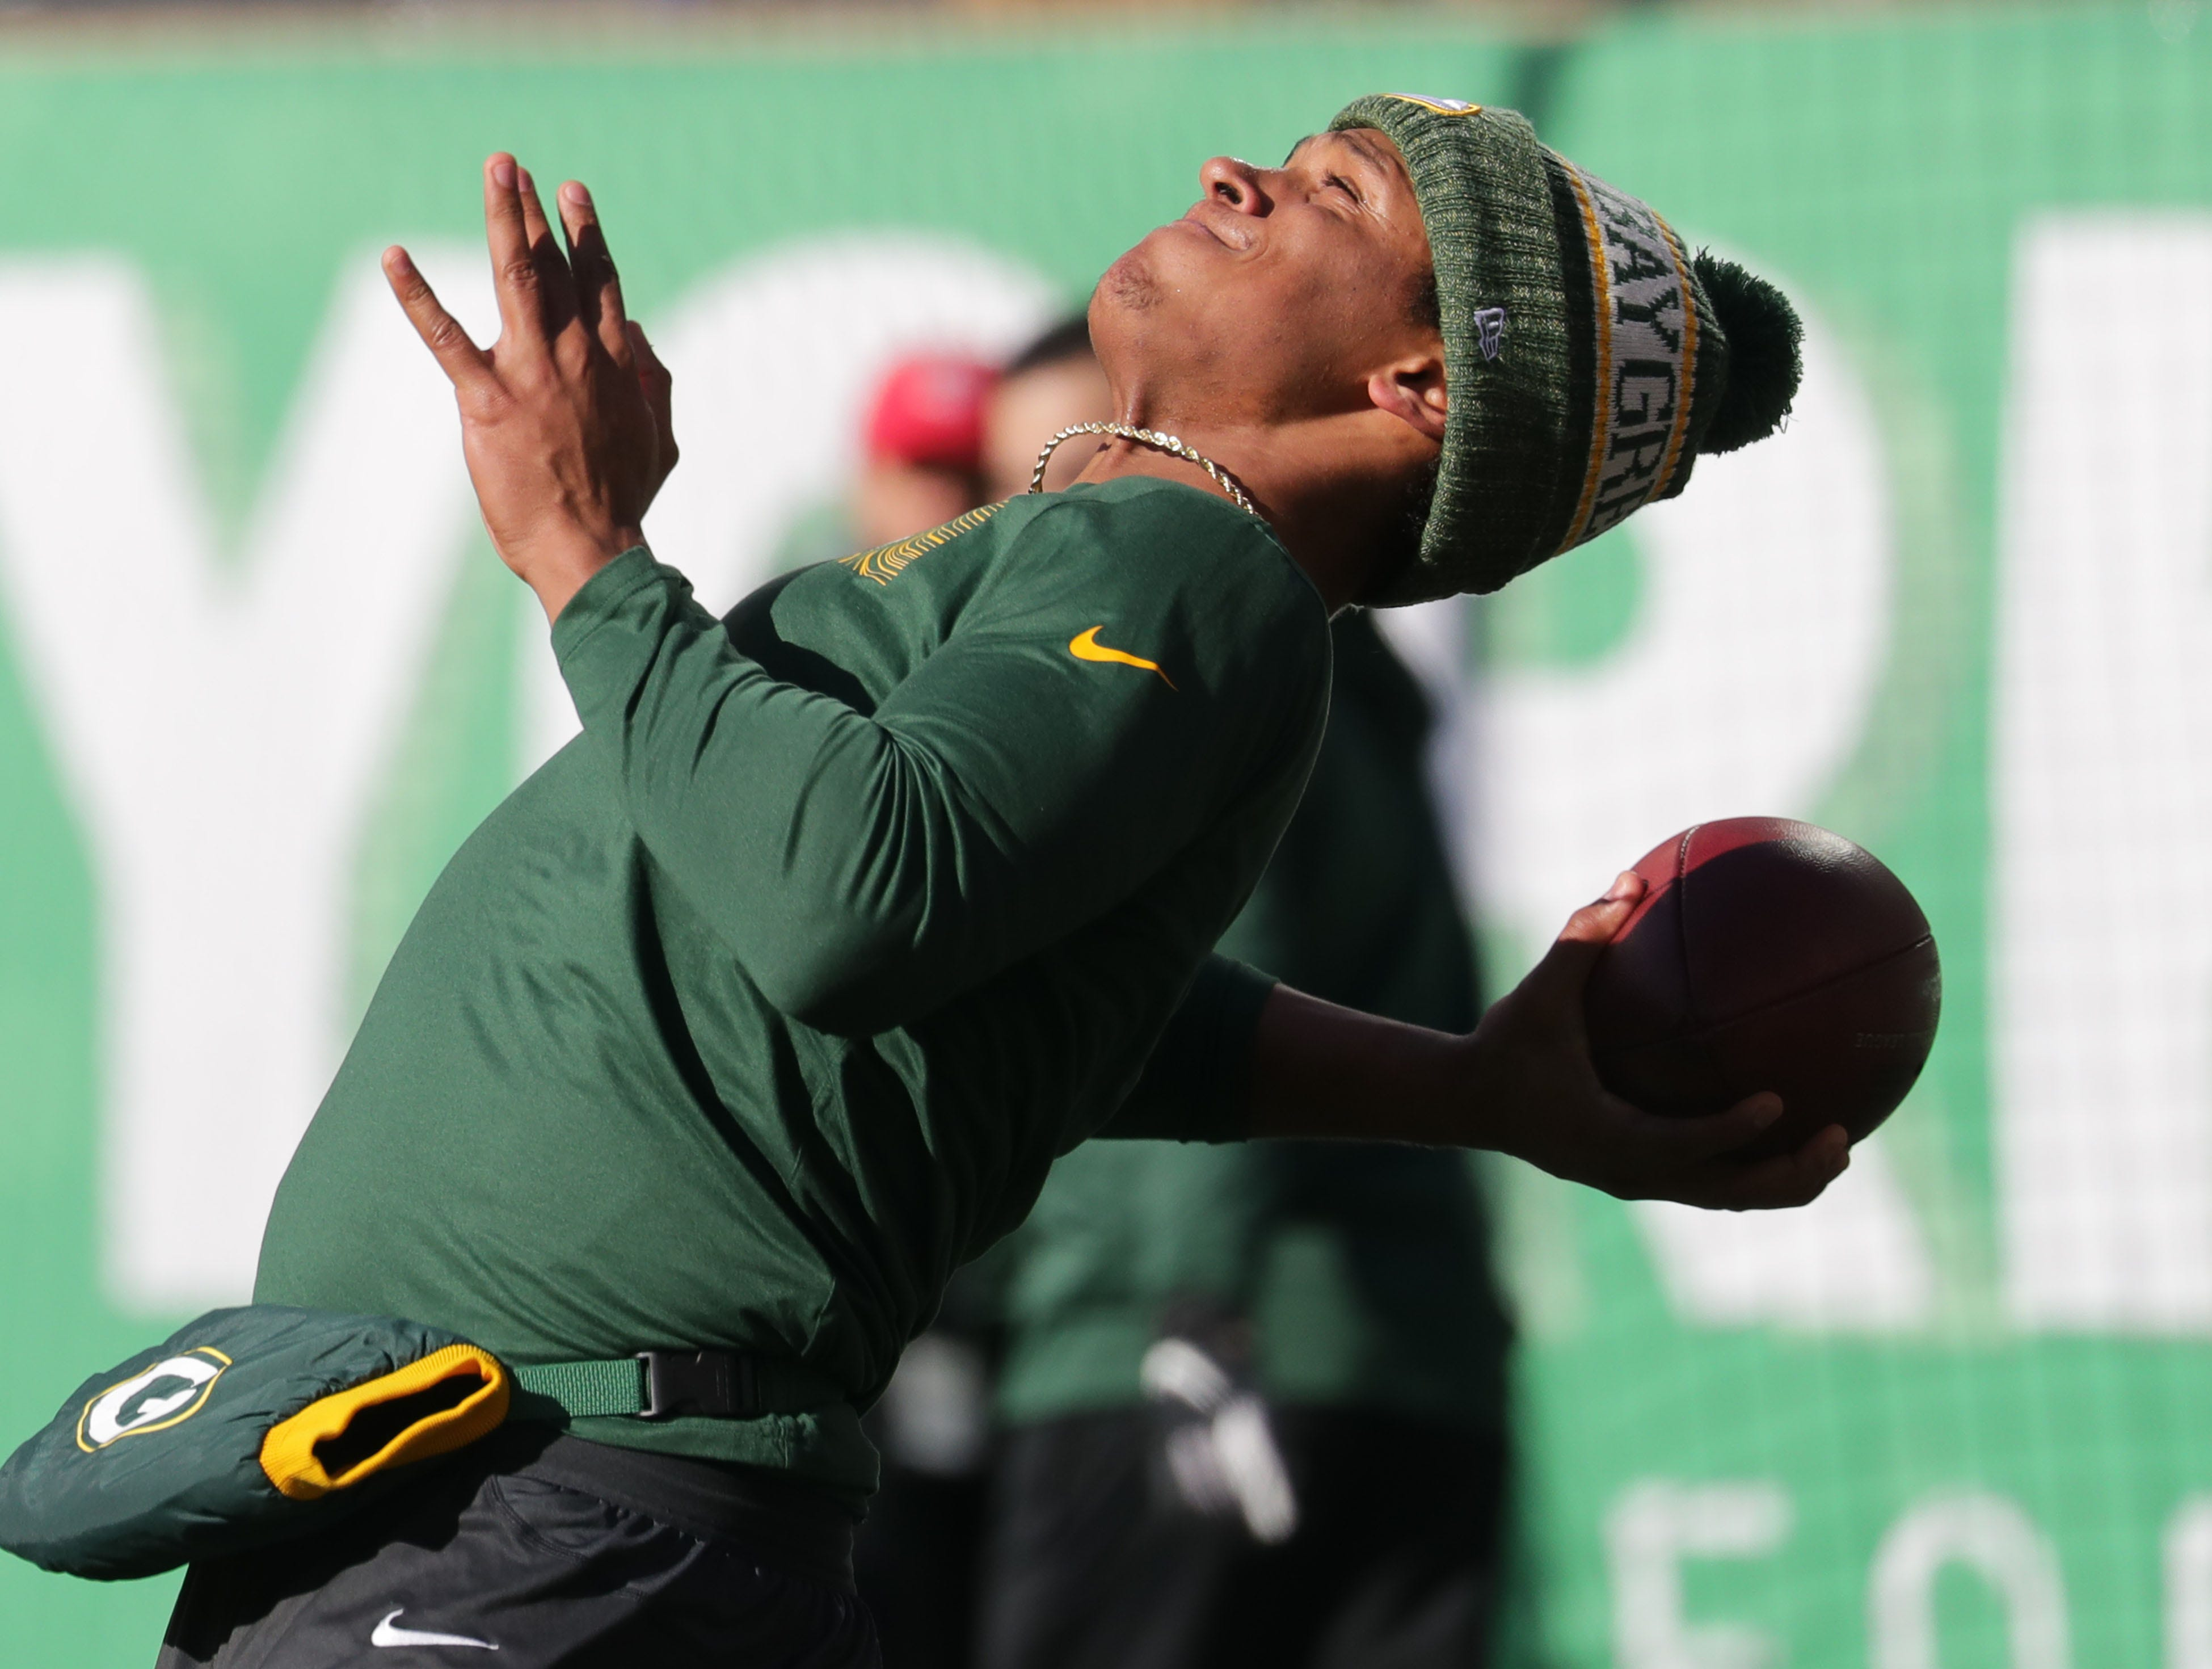 Green Bay Packers' DeShone Kizer warmth up before the Green Bay Packers game against the New York Jets at MetLife Stadium Sunday, Dec. 23, 2018, in East Rutherford.